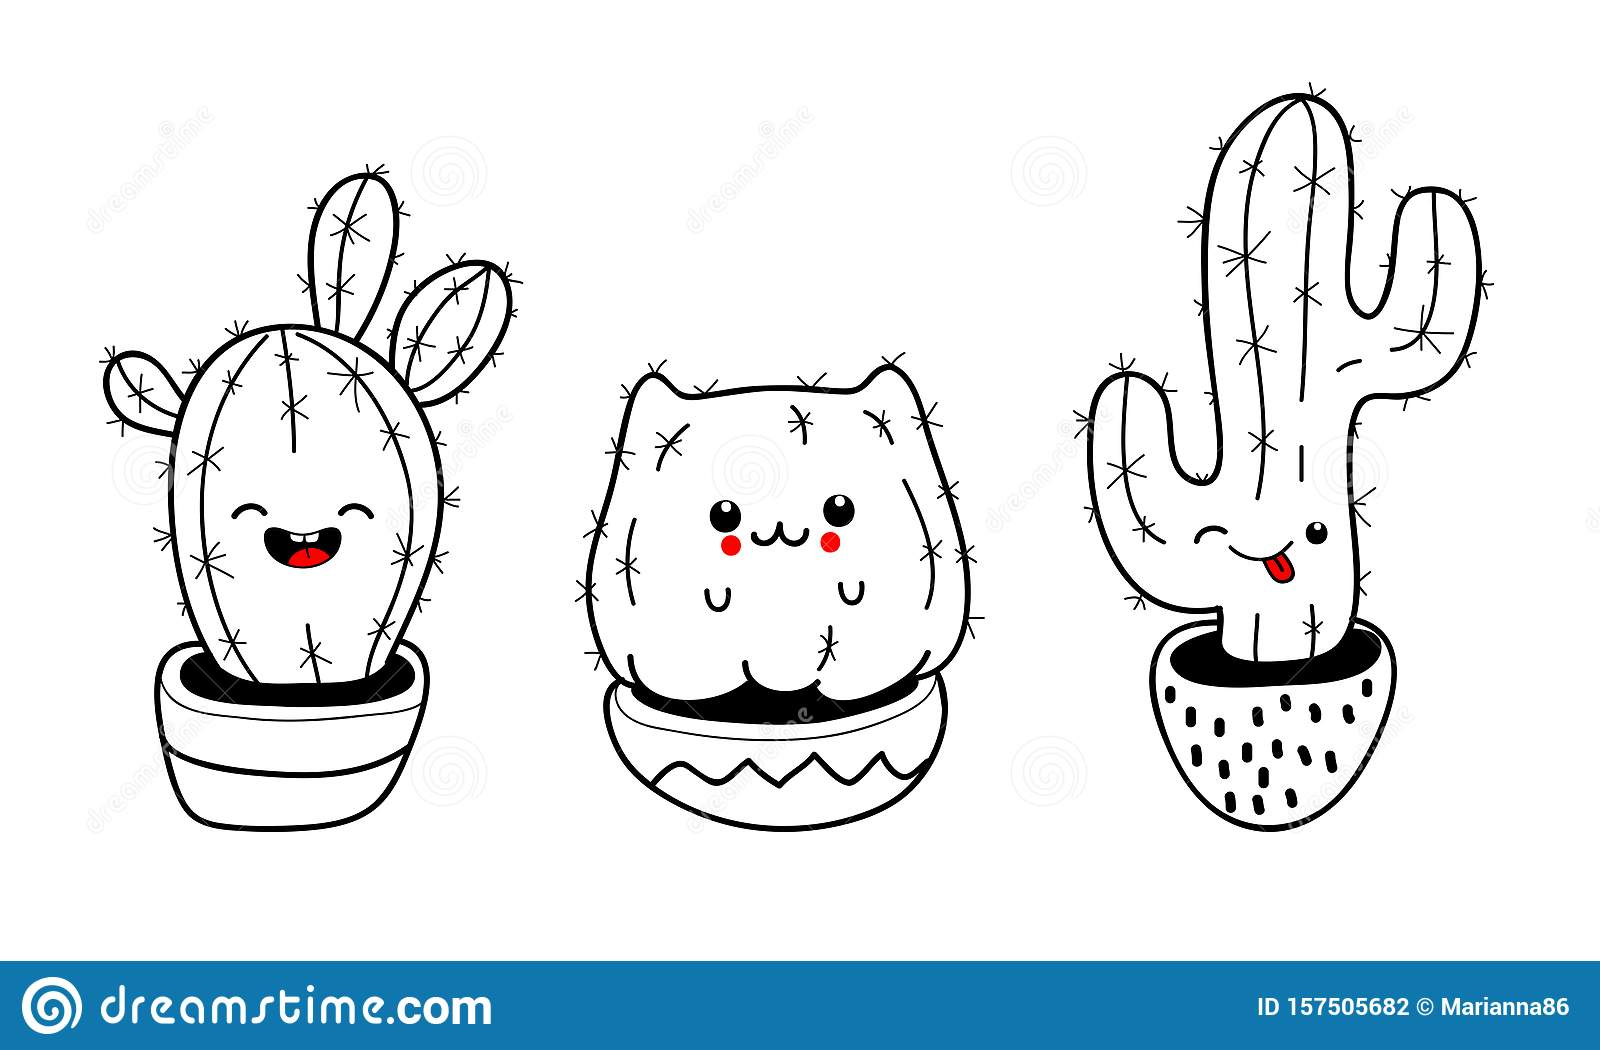 Set Of Cute Cartoon Cactus With Funny Kawaii Faces In Pots Vector Illustration Stock Vector Illustration Of Succulent Drawing 157505682